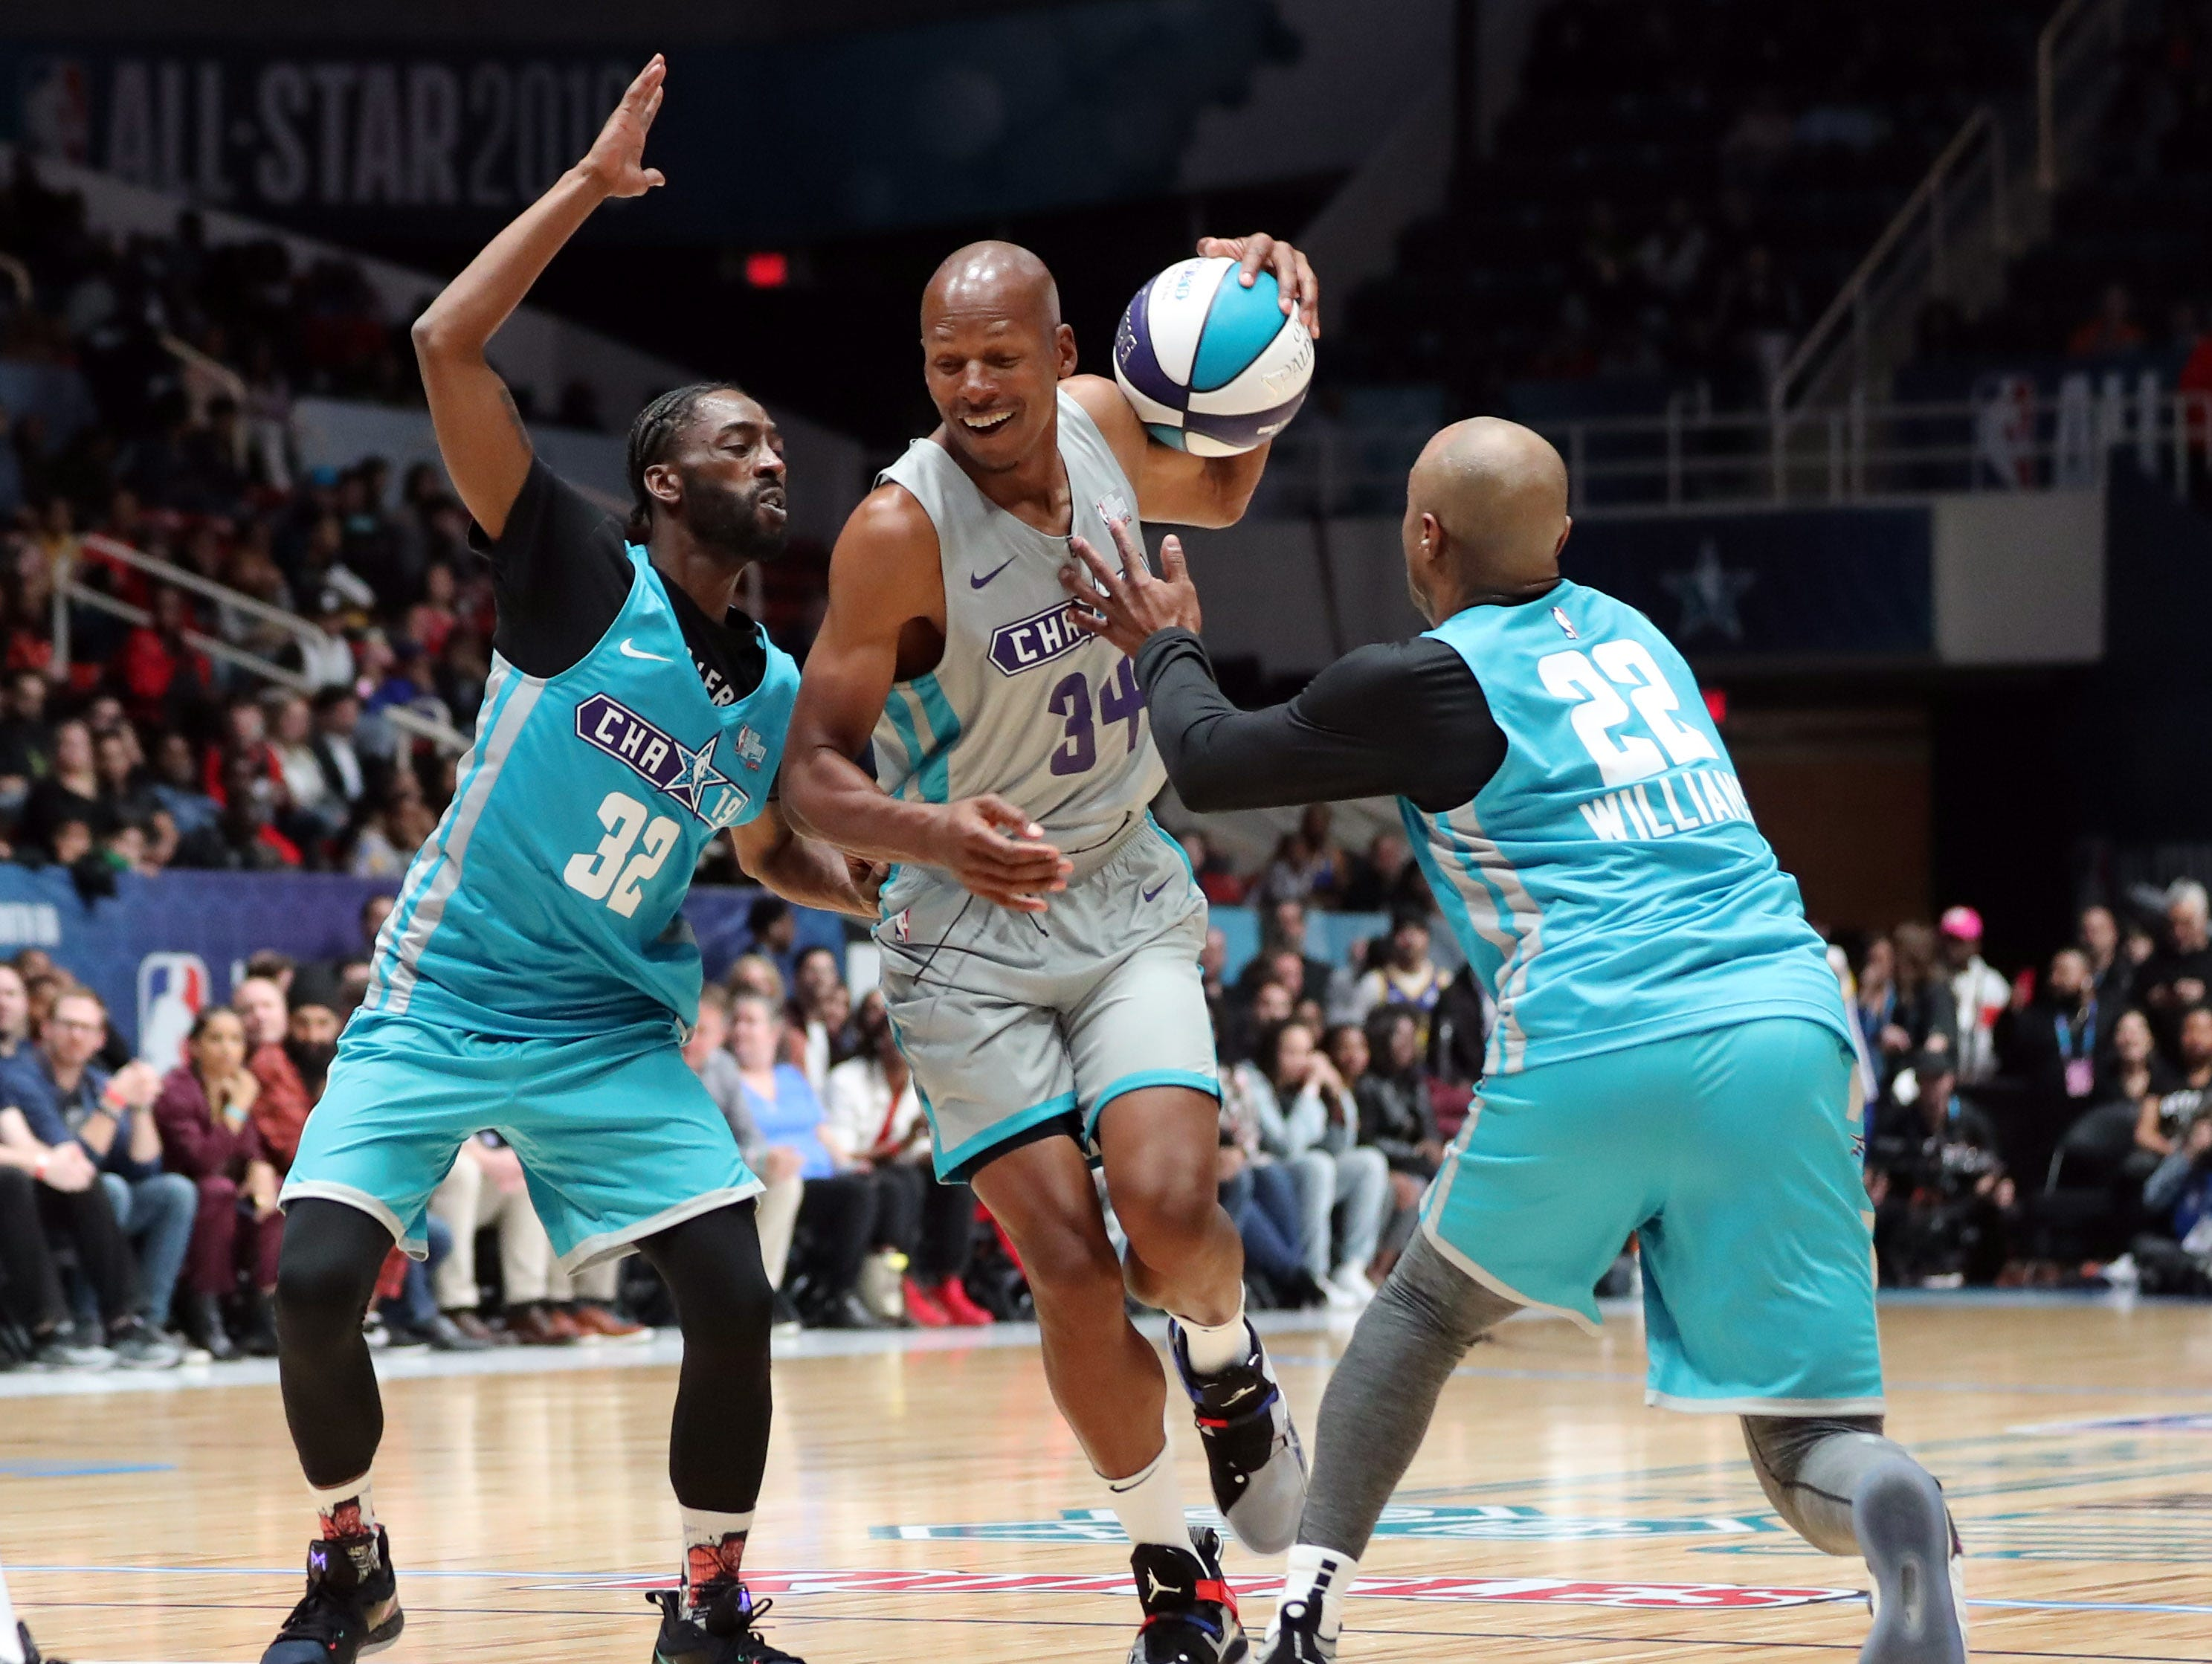 Ray Allen is guarded by Famous Los and Jay Williams during the Celebrity Game.